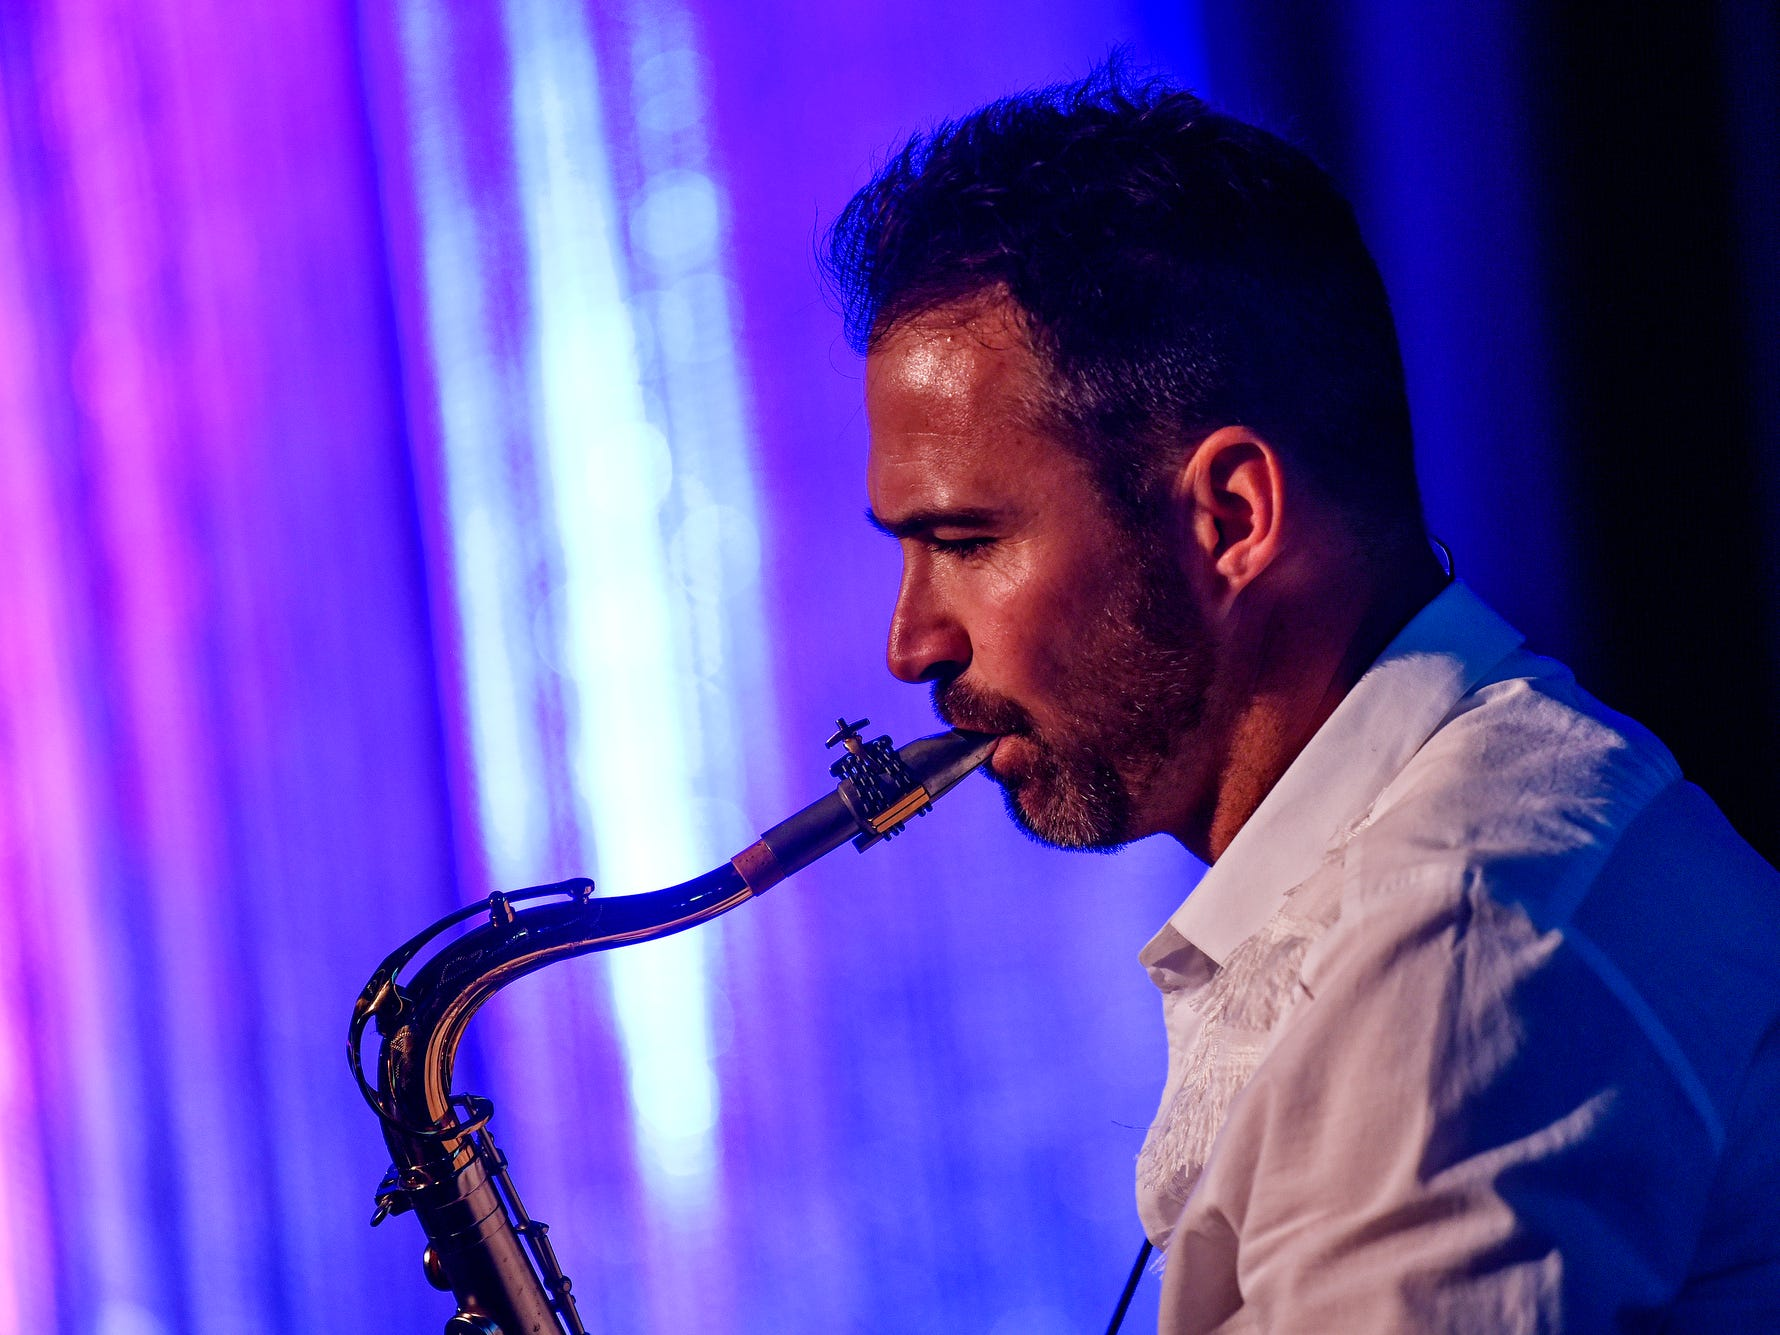 Saxophonist Phil Denny performs with a band during the fifth-annual Lansing Promise Dinner on Thursday, April 25, 2019, at the Don Johnson Fieldhouse in Lansing.